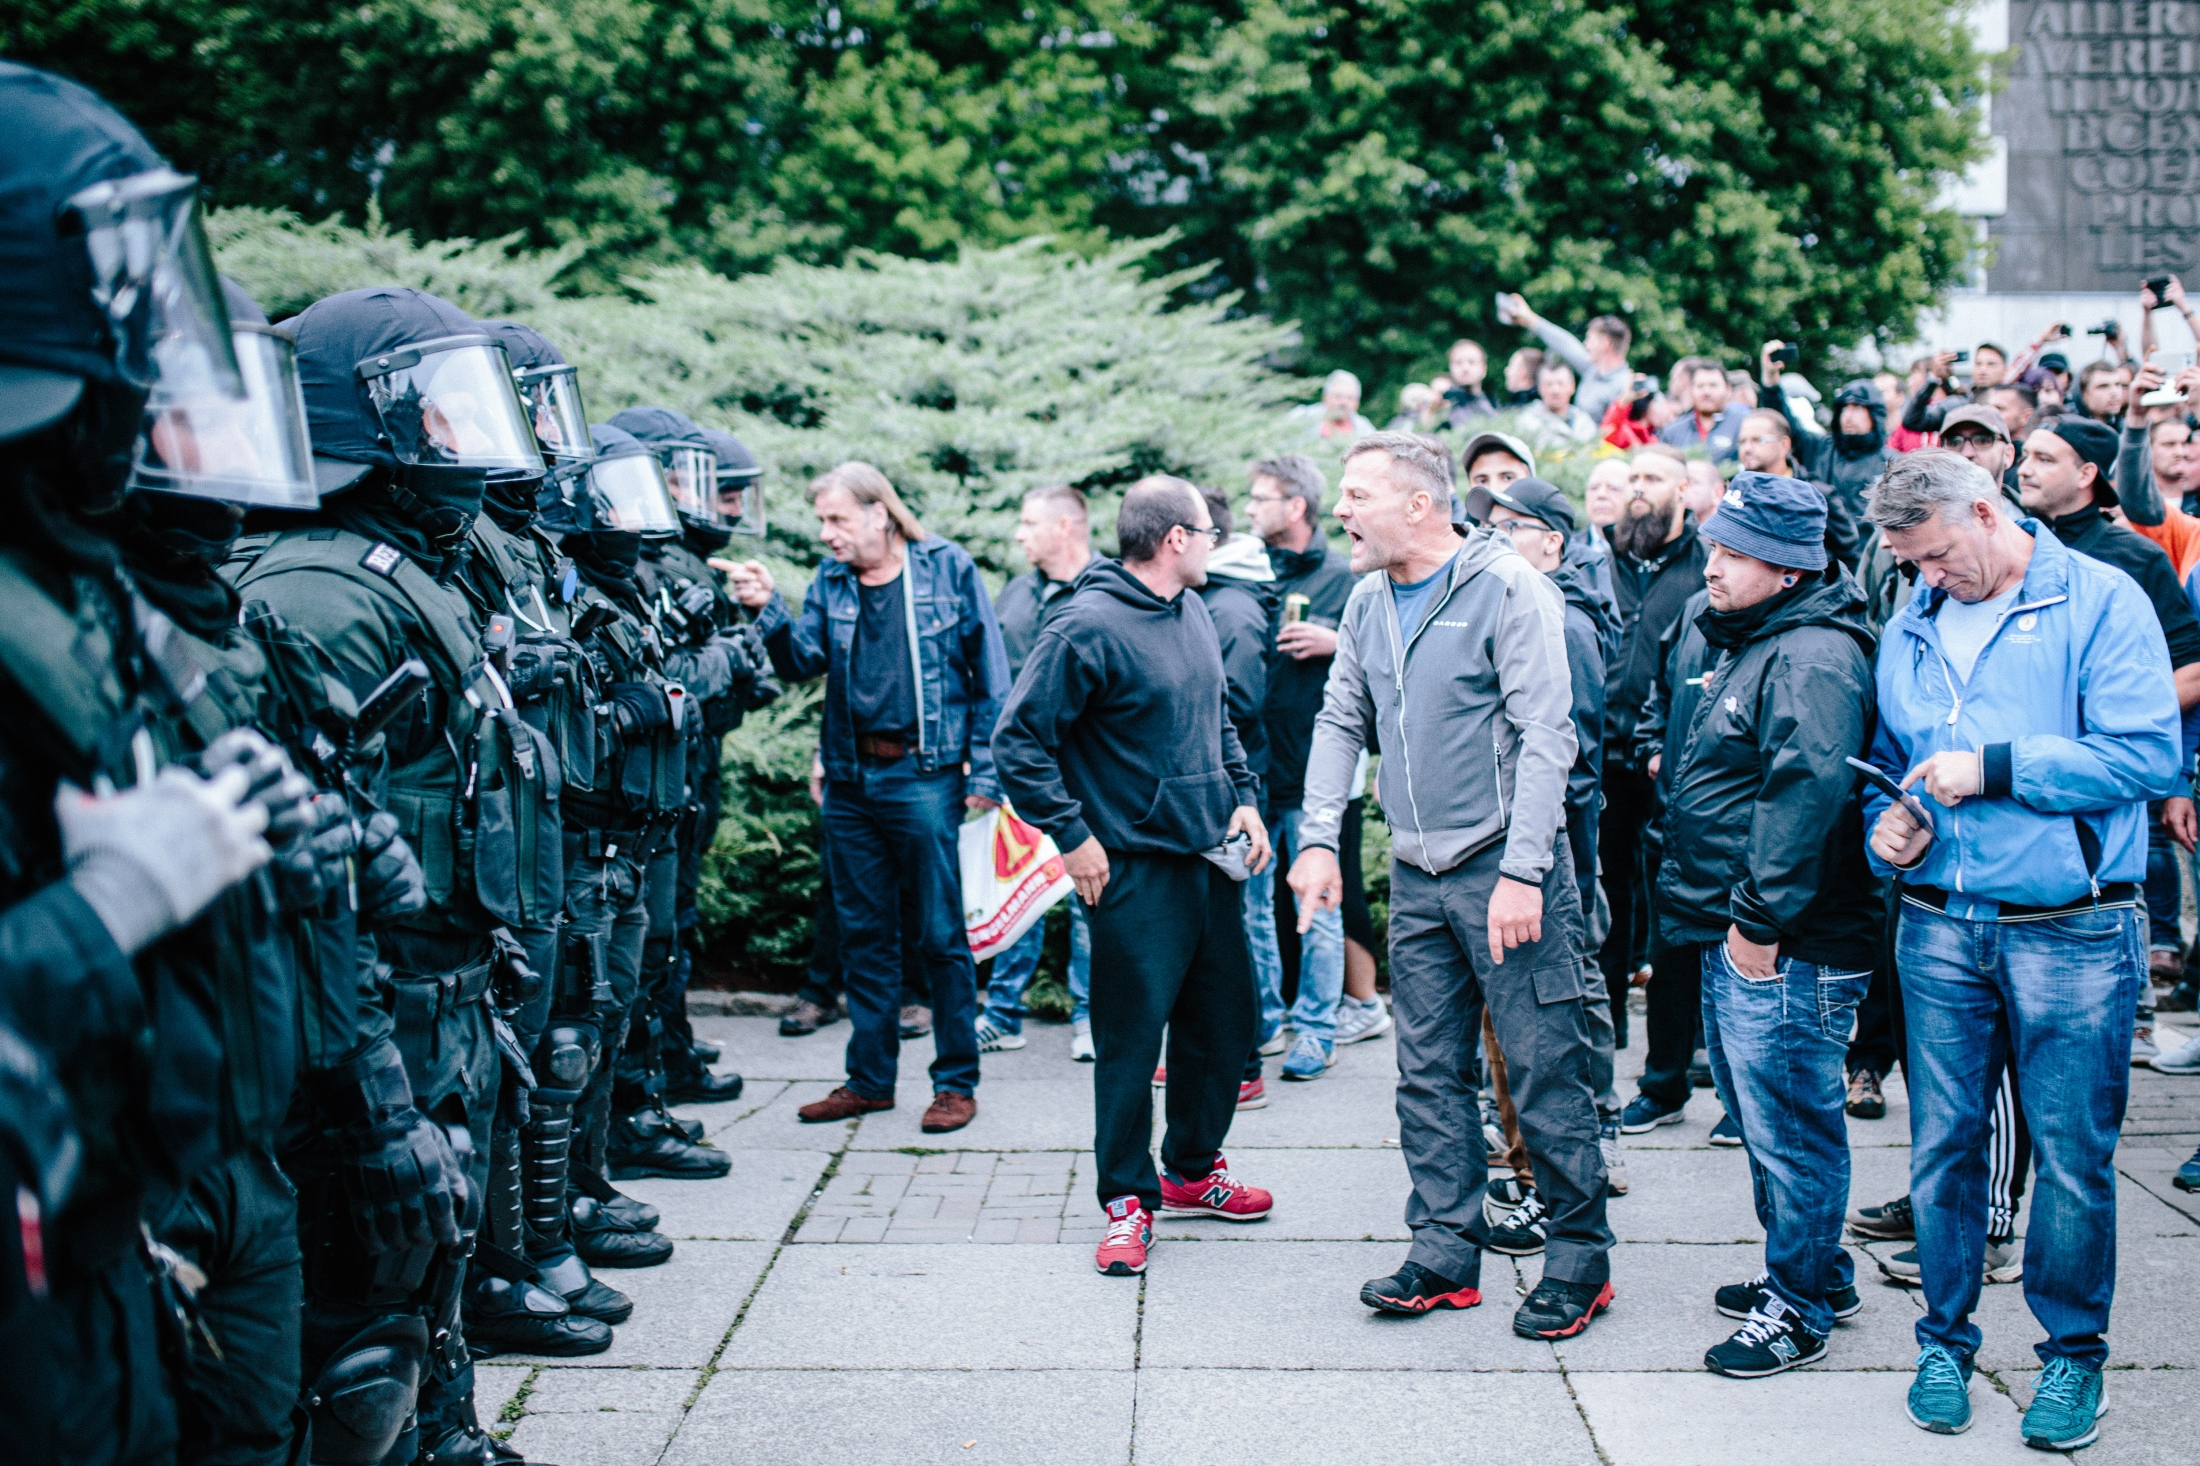 Far-right demonstrators shouting at police holding back the group after street blockade.